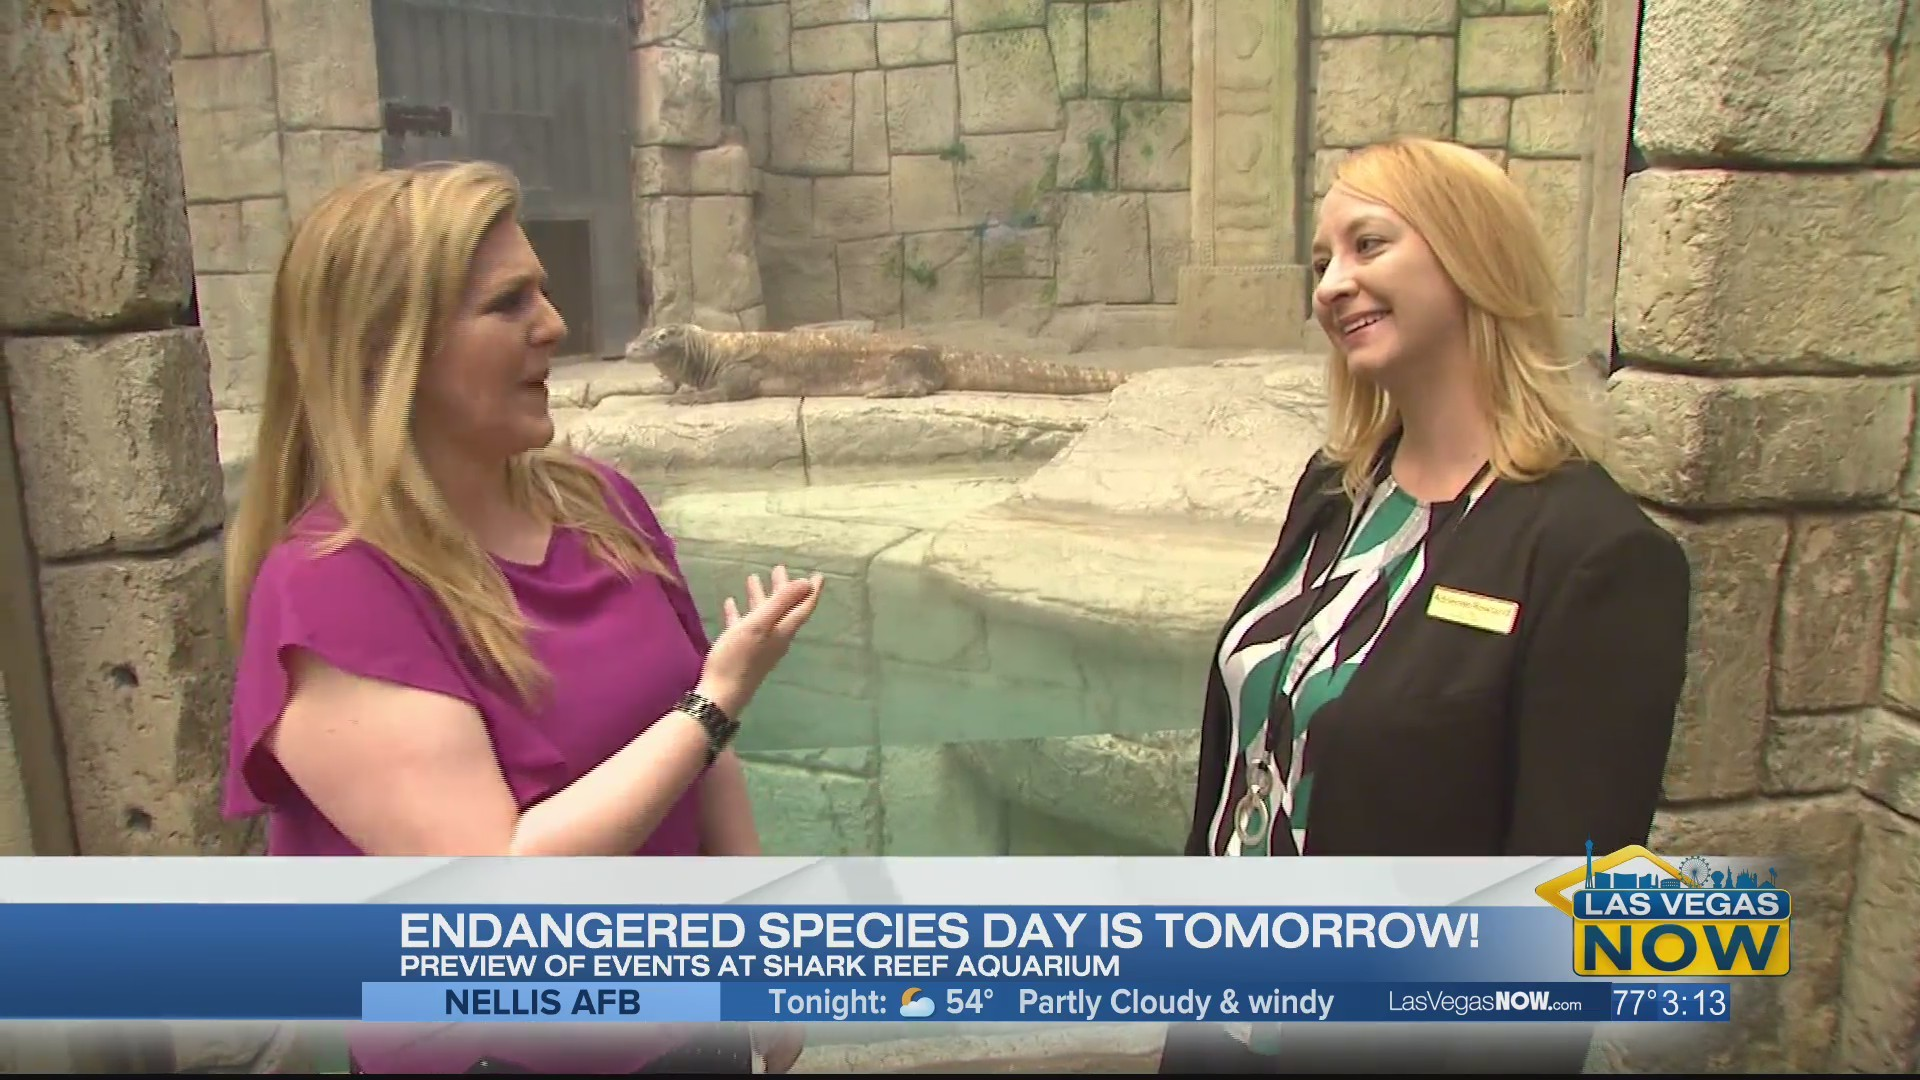 A preview of Endangered Species Day at The Shark Reef Aquarium